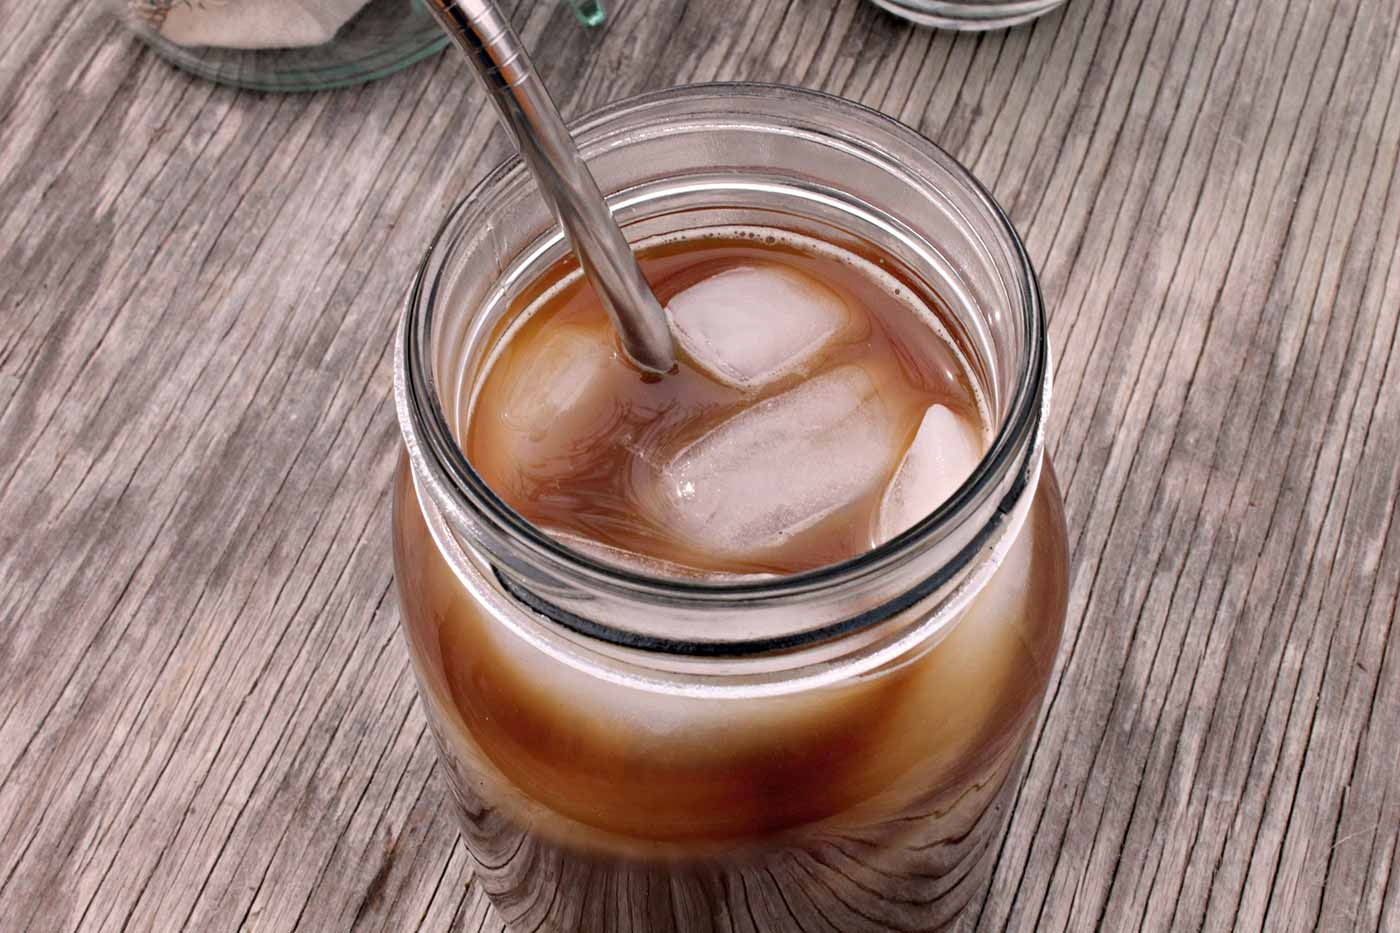 CafCaf Kaffee Blog, Kaffeeblog: Cold Brew Coffee